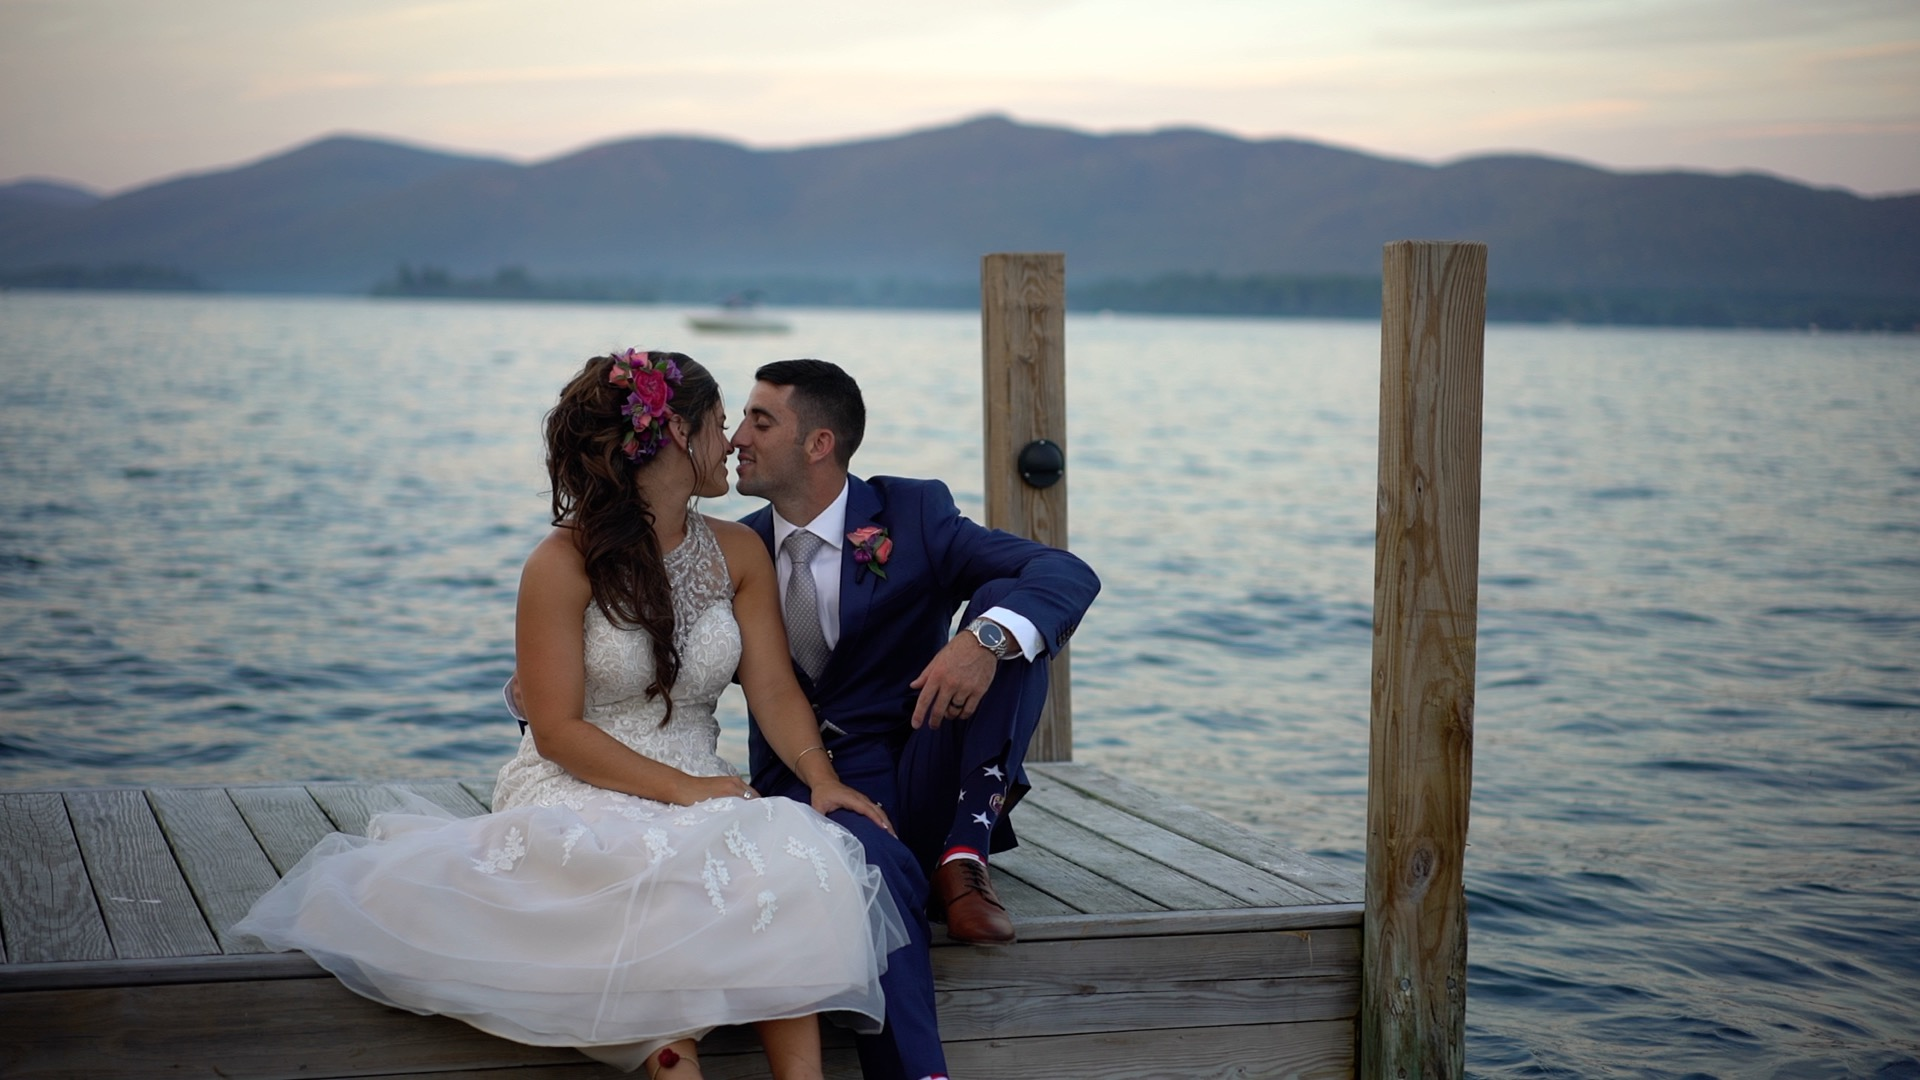 Jenna + Brian | Lake George, New York | The Inn At Erlowest